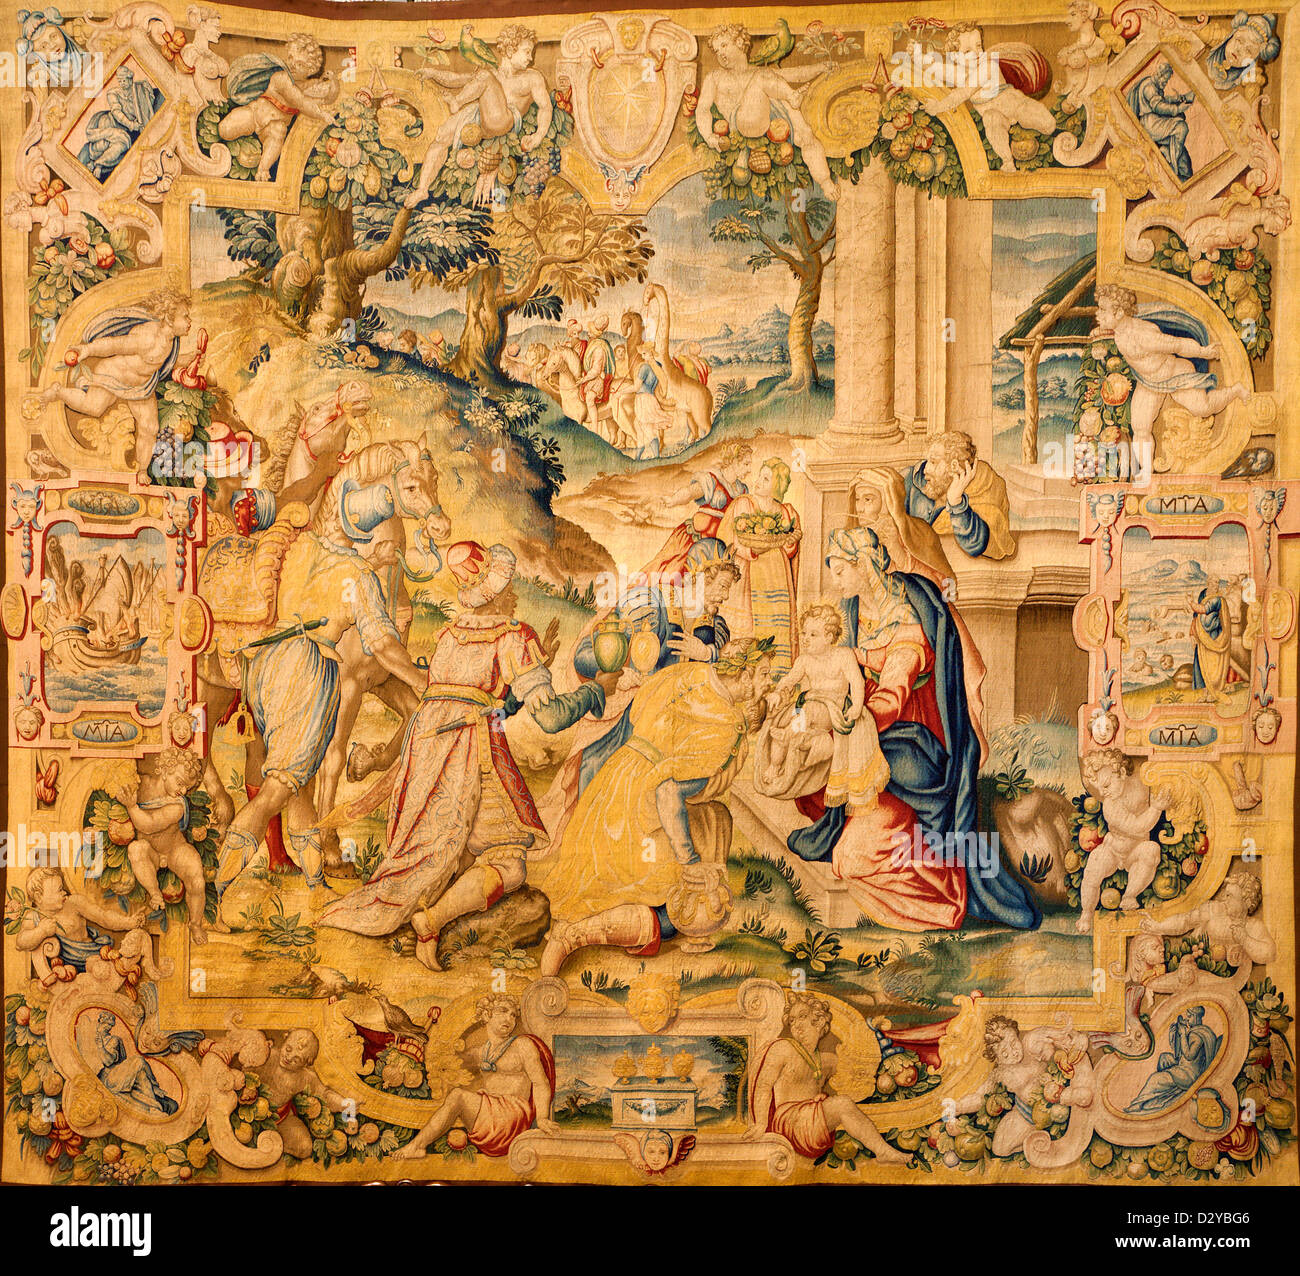 BERGAMO - JANUARY 26: Gobelin of Adoration of the magi from year 1583 by  Alessandro Allori in church Santa Maria Maggiore